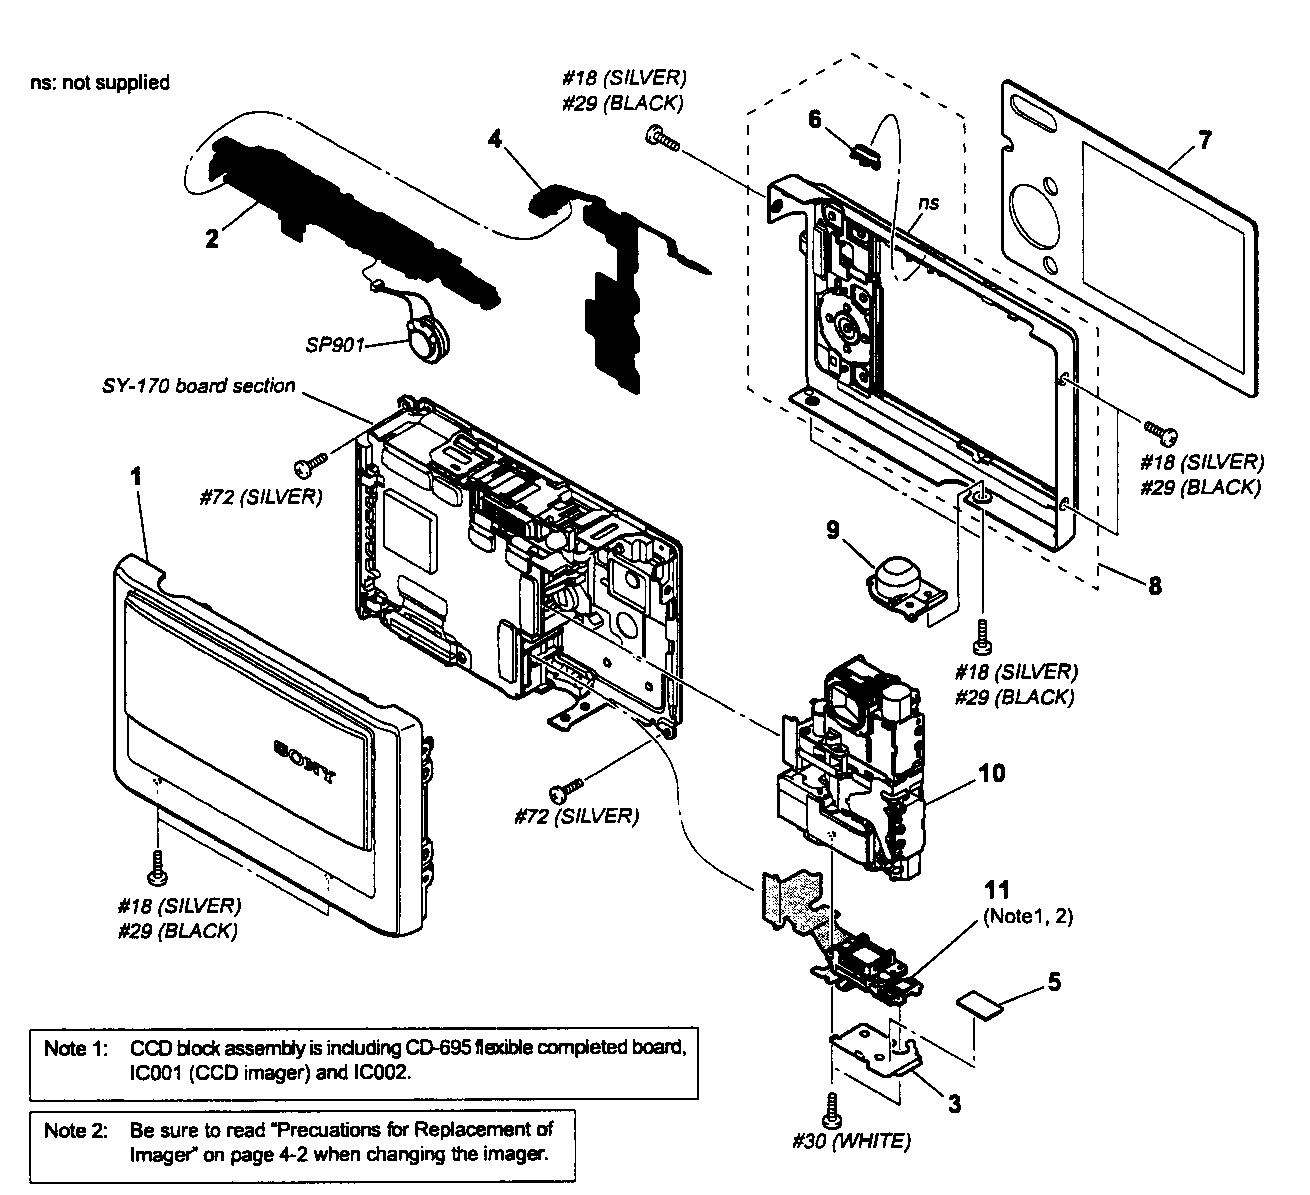 camera parts diagram wiring of window type air conditioner sony digital model dsct20 sears partsdirect